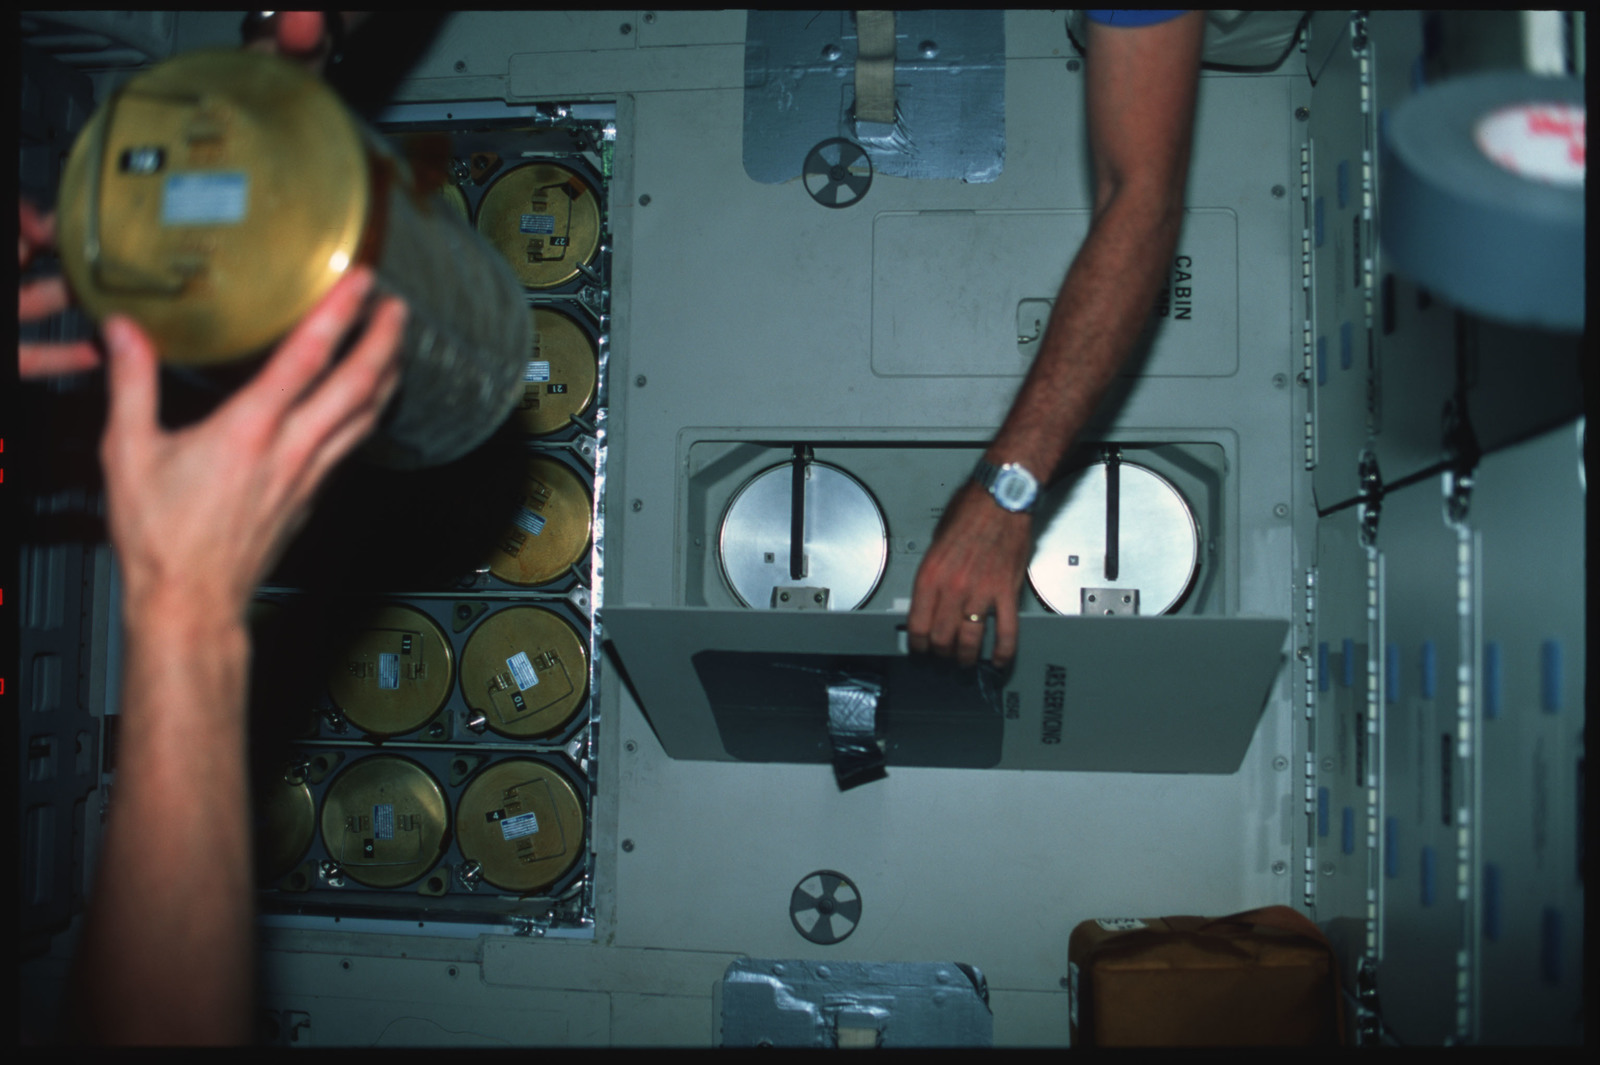 S45-41-018 - STS-045 - STS-45 crewmembers switch out LiOH canisters